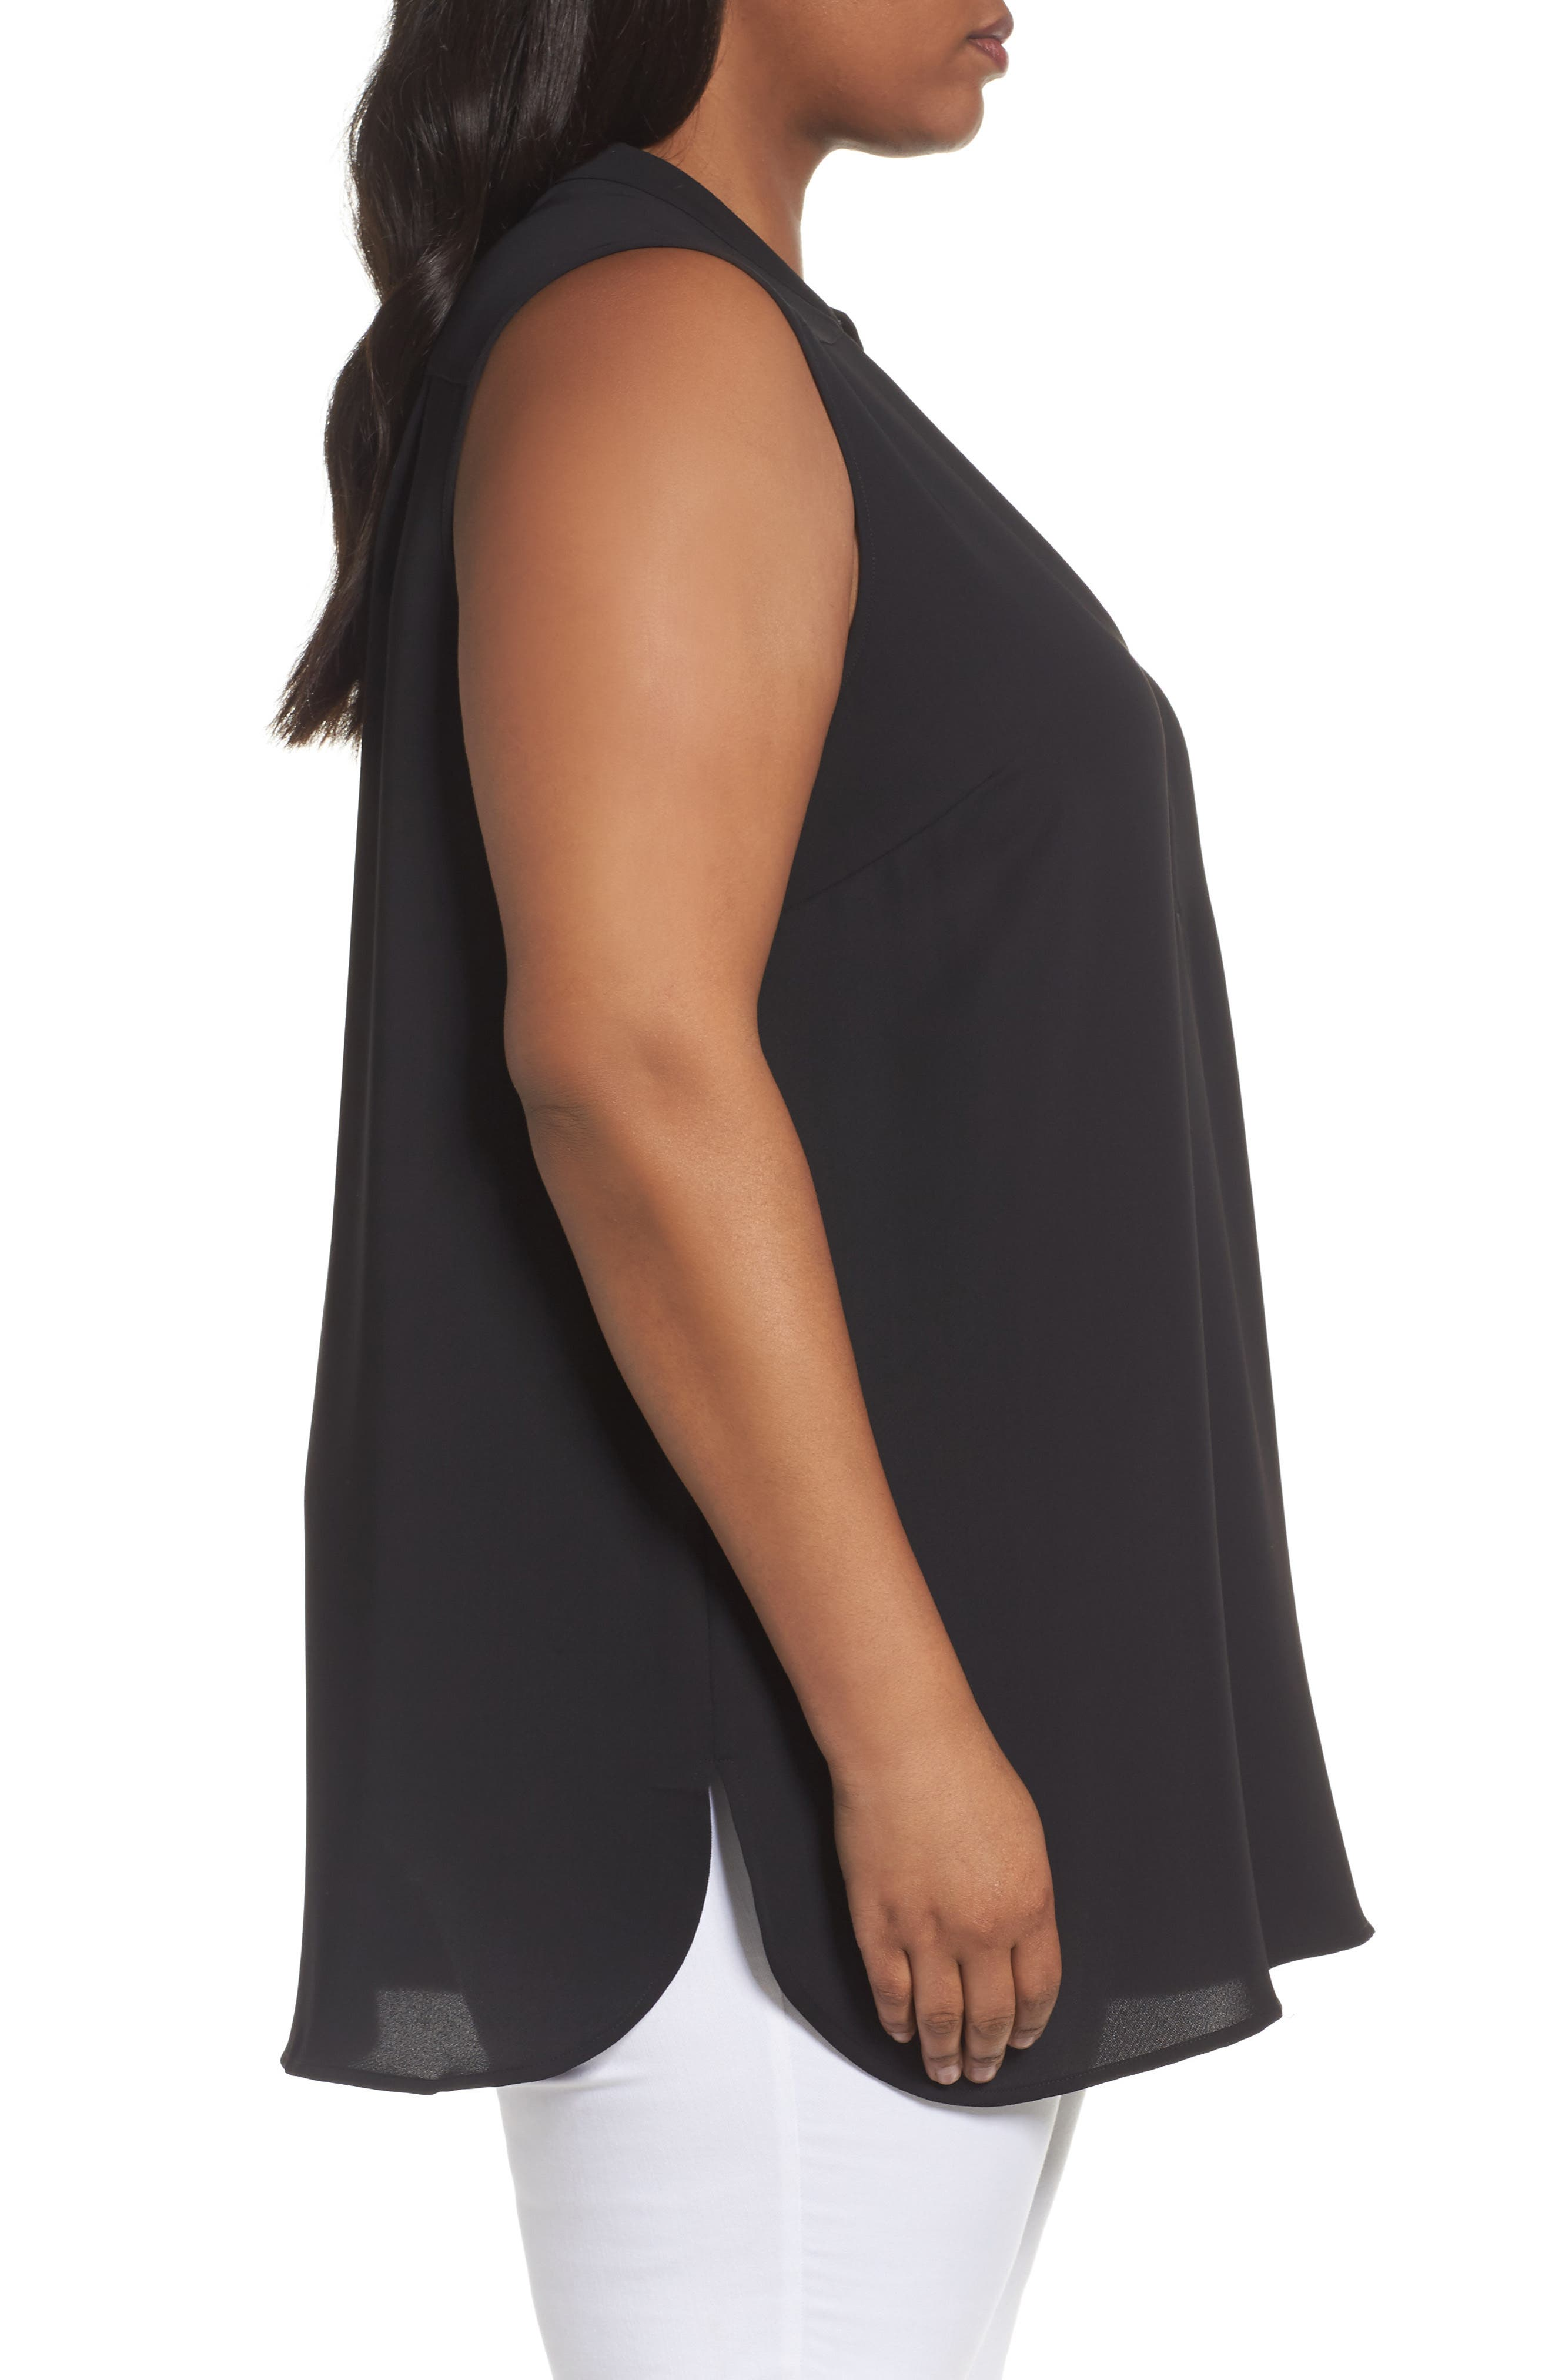 Forget Me Not Top,                             Alternate thumbnail 3, color,                             Black Onyx